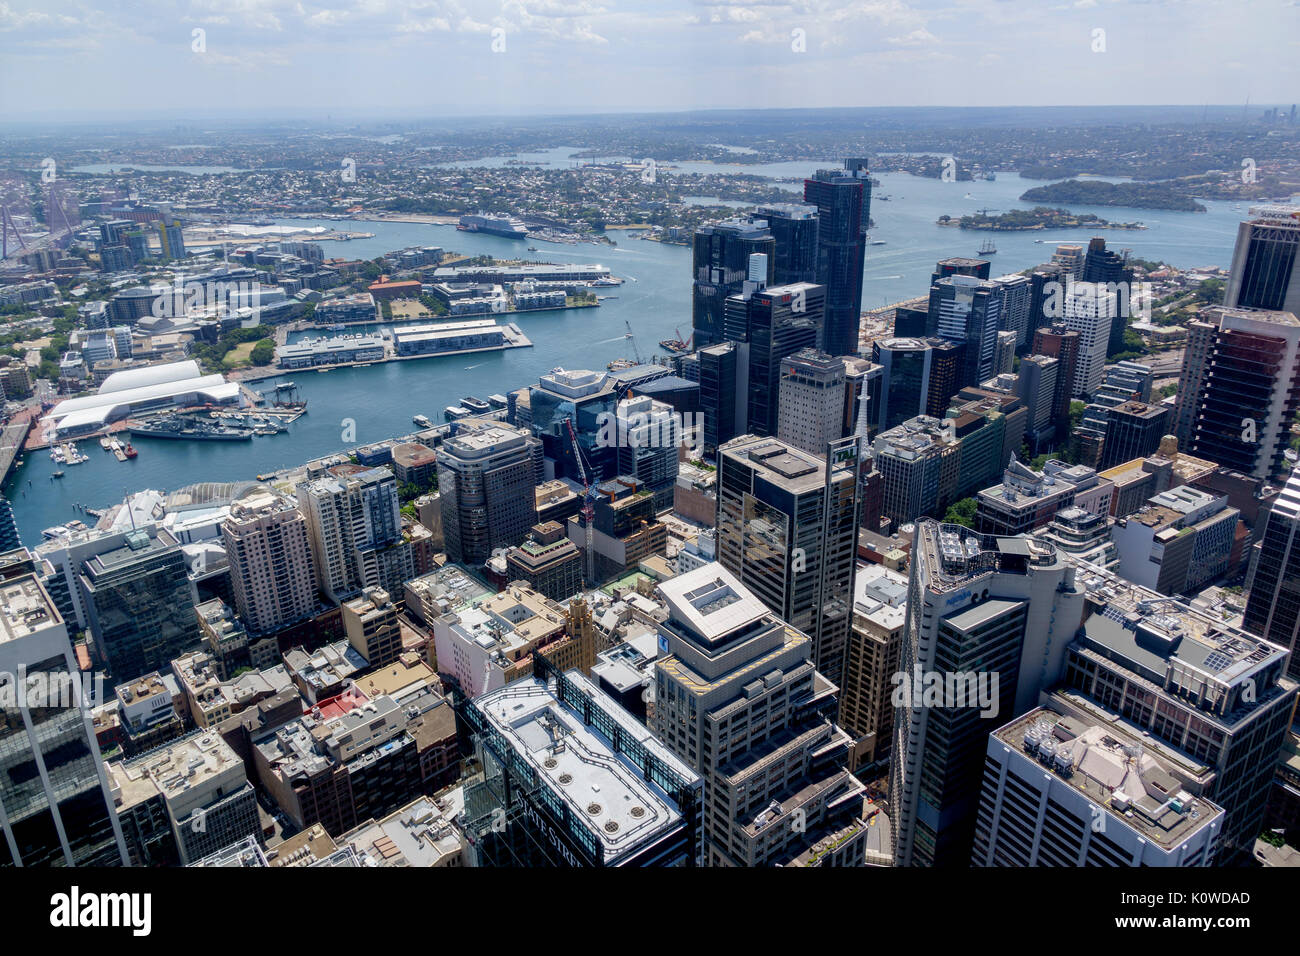 The Central Business District Aerial View From The Sydney Tower Eye Showing The Harbour And Skyline Of Sydney Australia - Stock Image